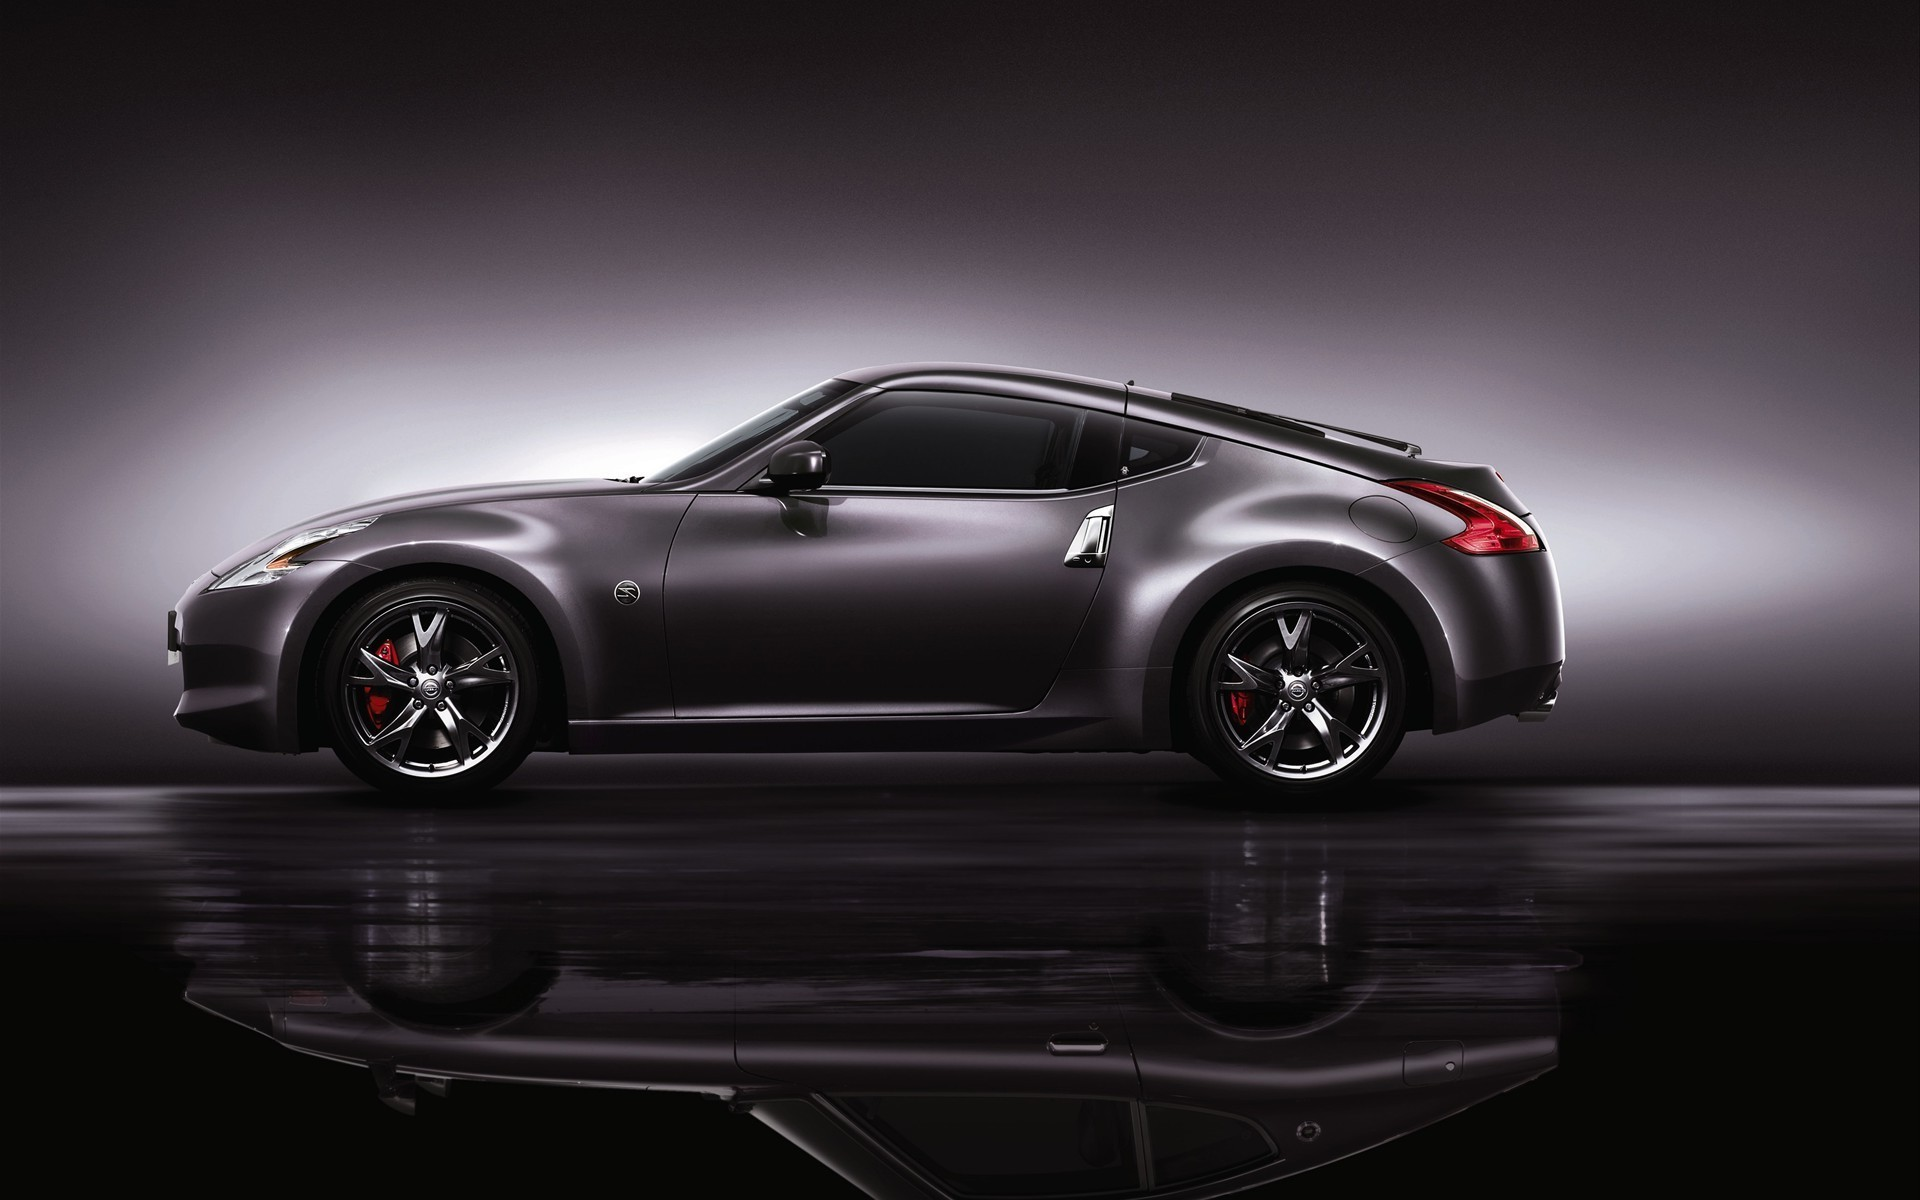 Nissan 370Z Wallpaper Widescreen - WallpaperSafari